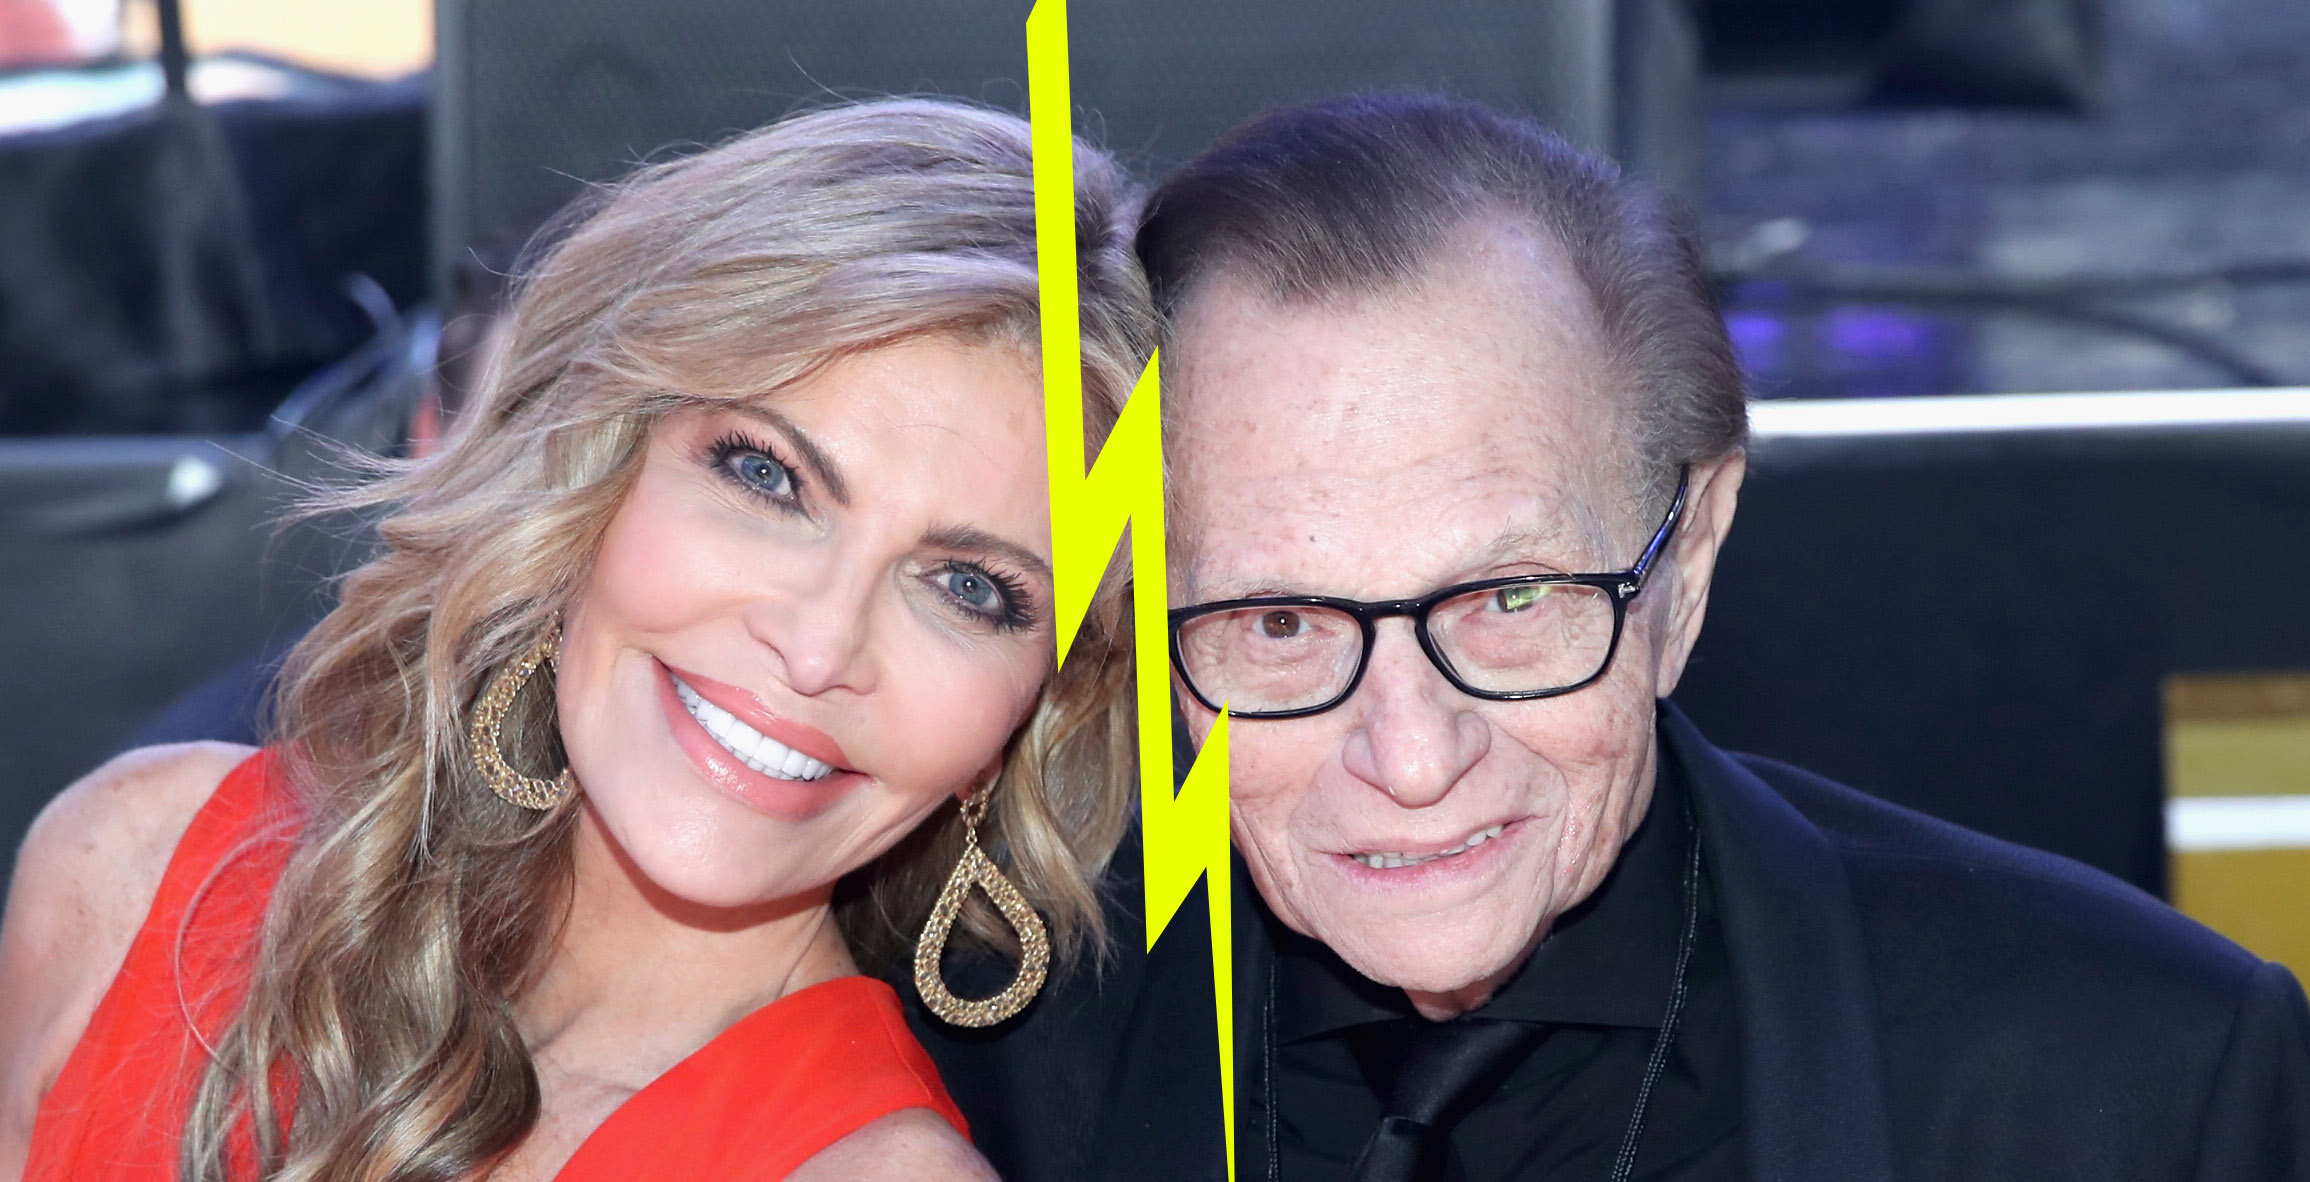 Larry King Reveals Why He Divorced Wife of 22 Years Shawn King